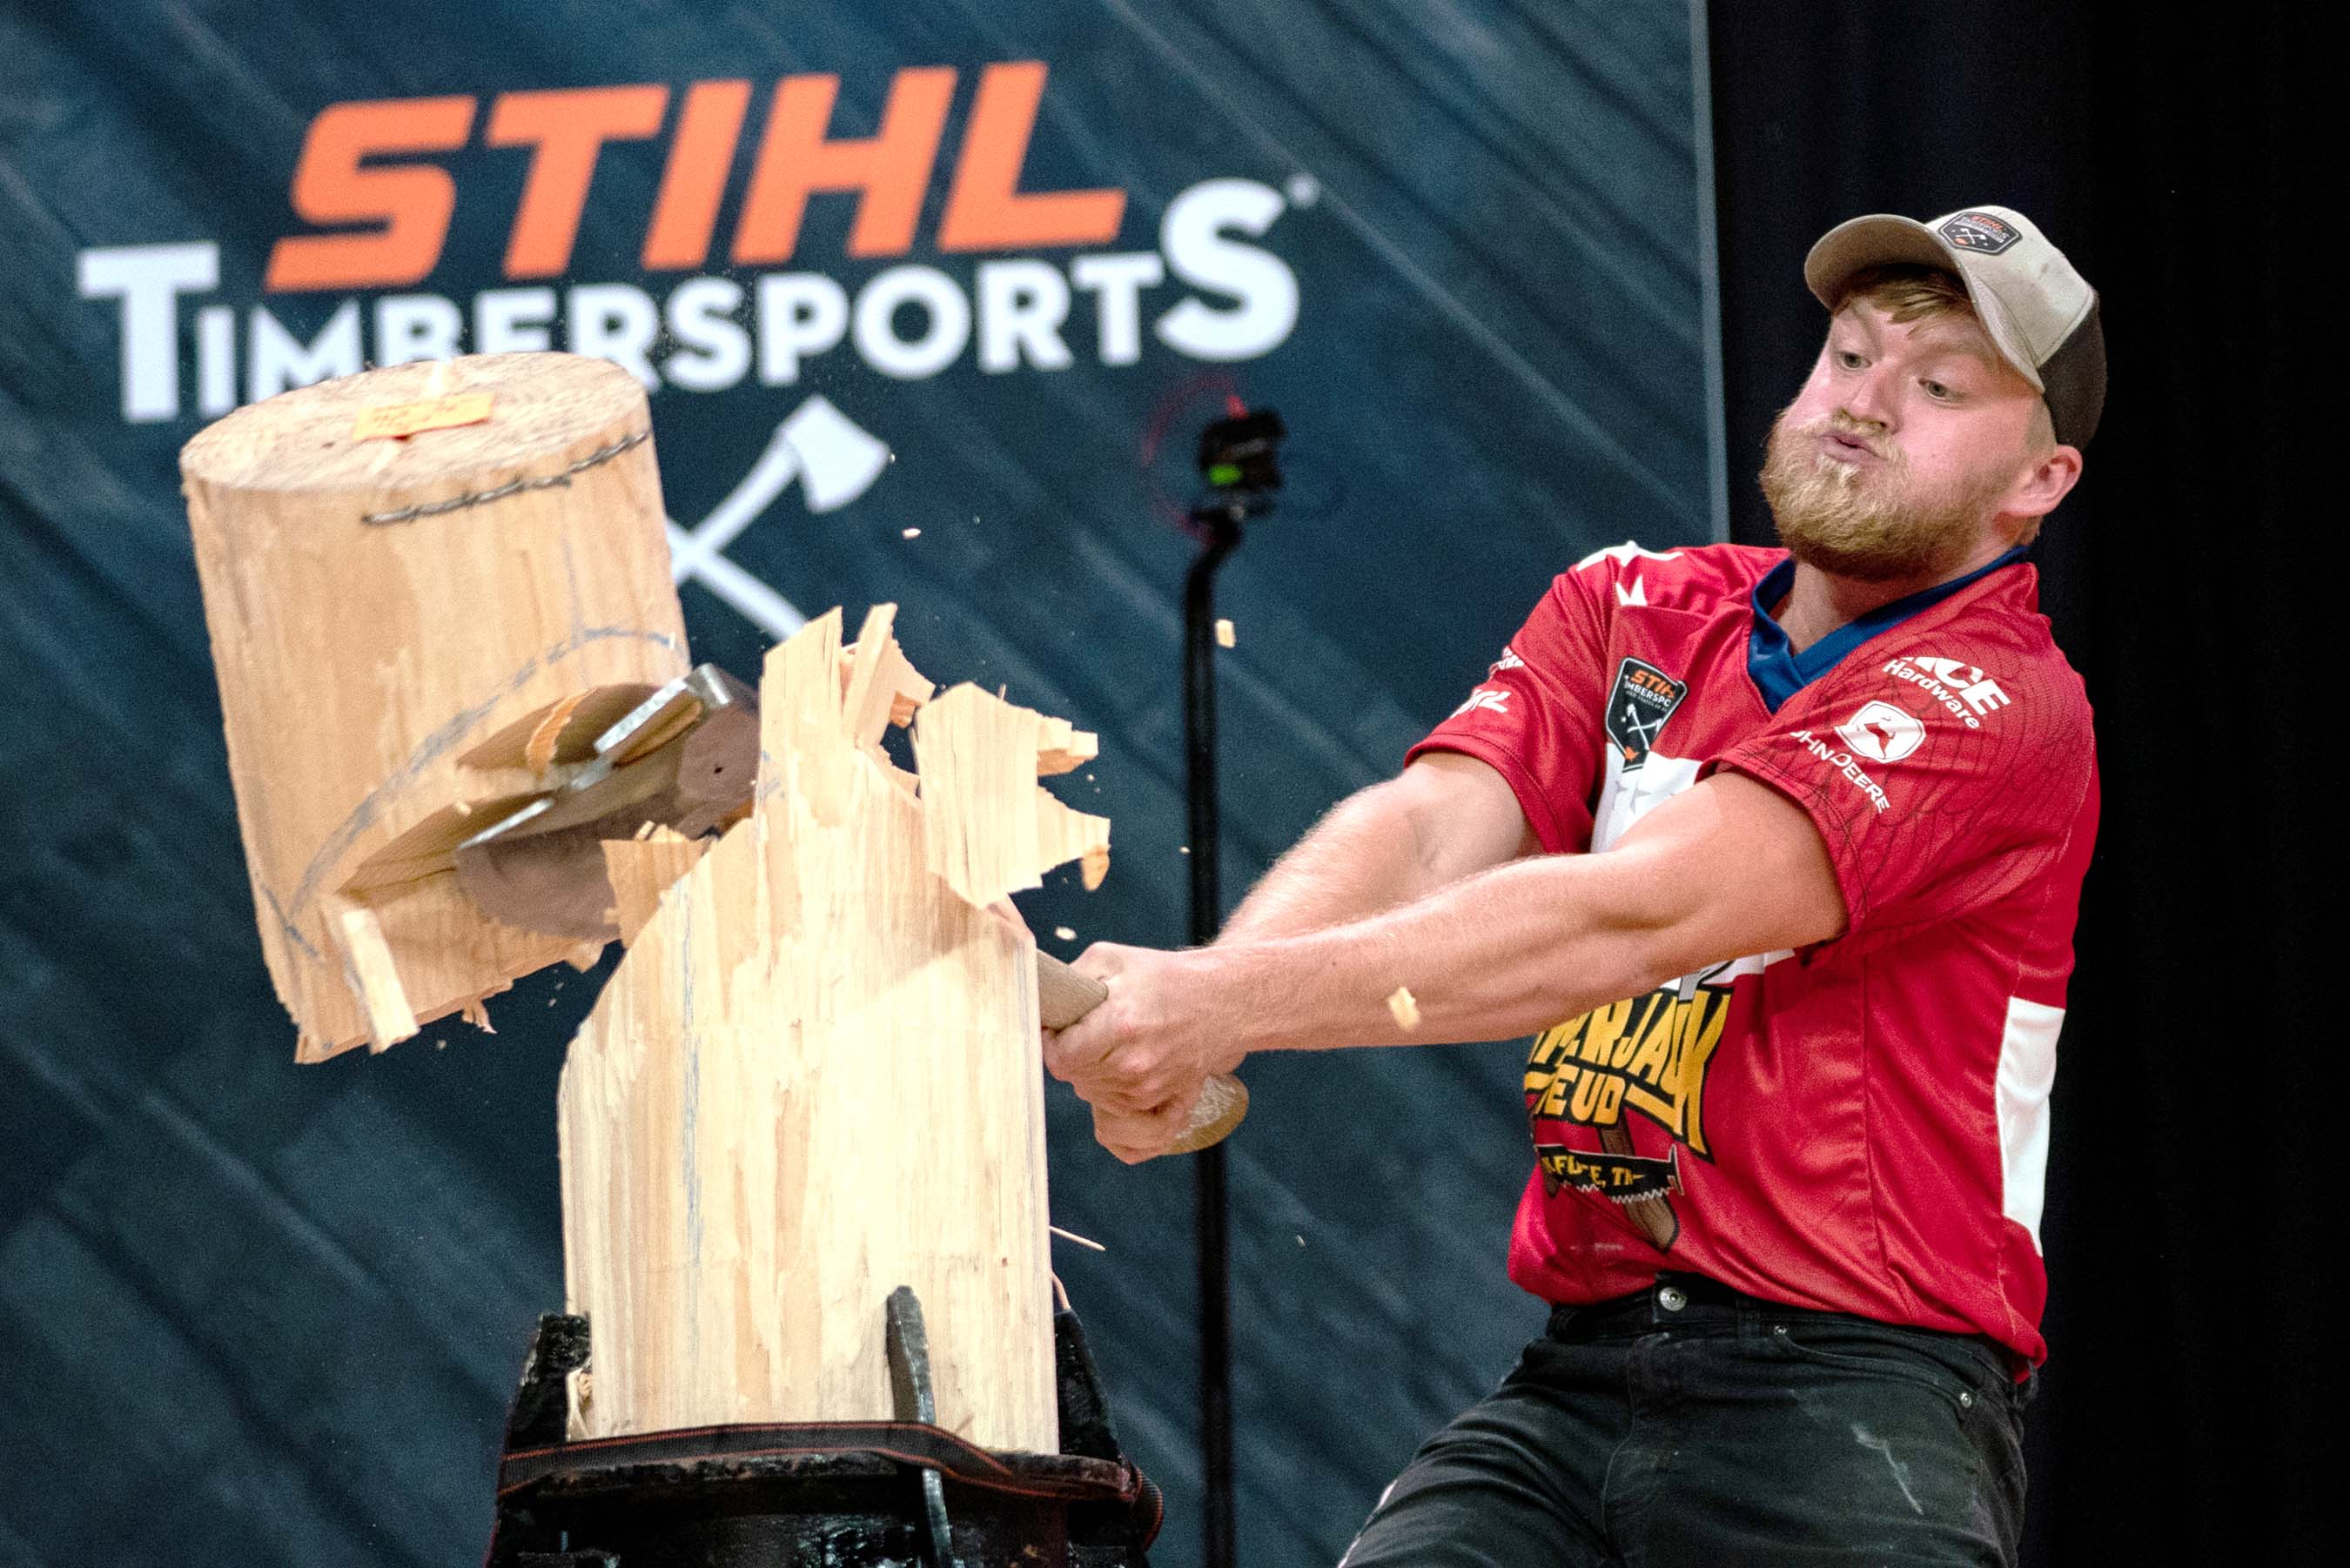 Darby Hand takes on seven others in a fiercely contested battle for the new U.S. STIHL TIMBERSPORTS Rookie Division Championship.